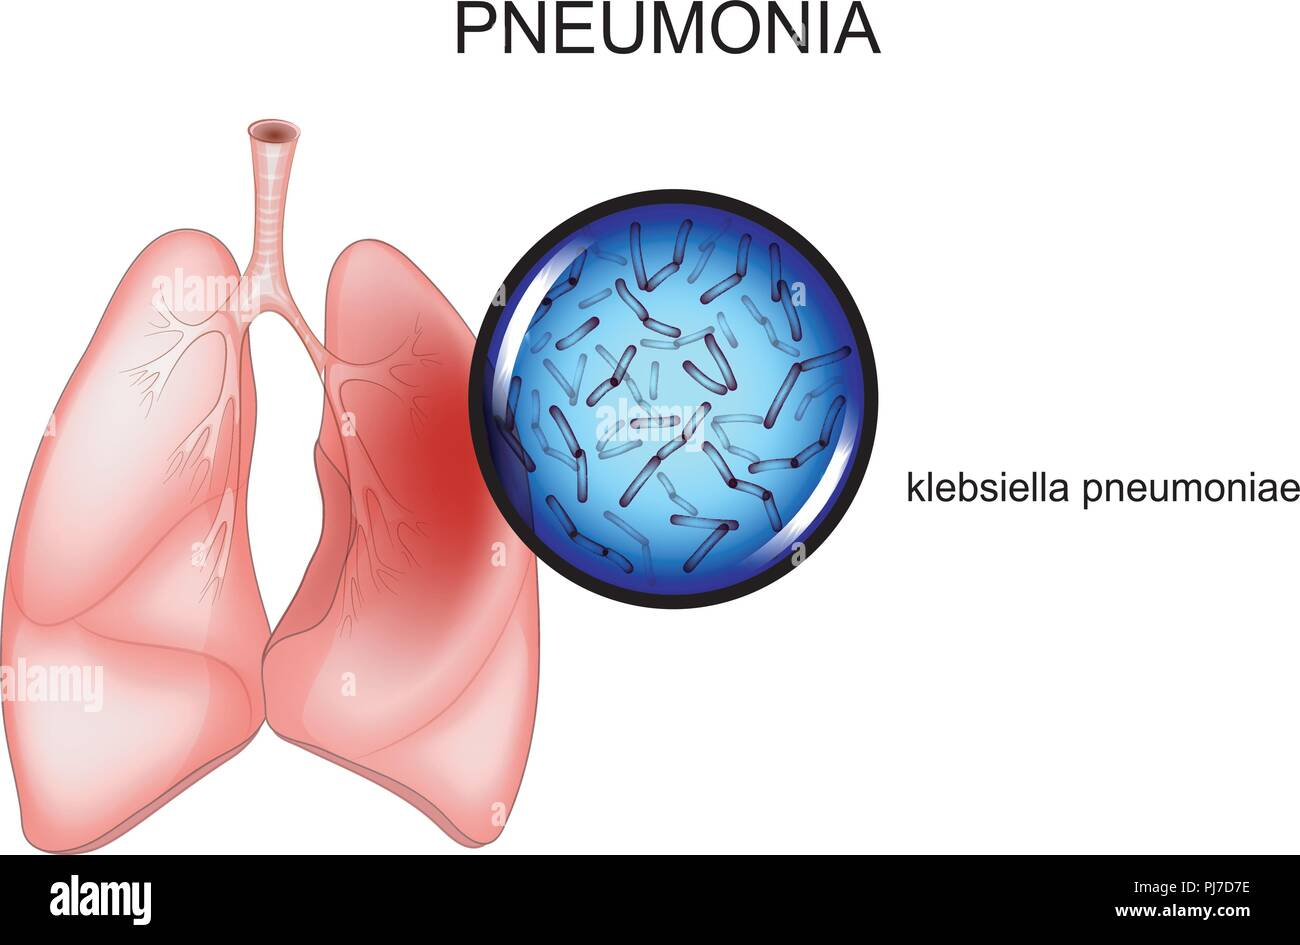 vector illustration of pneumonia. causative agent - Klebsiella - Stock Image